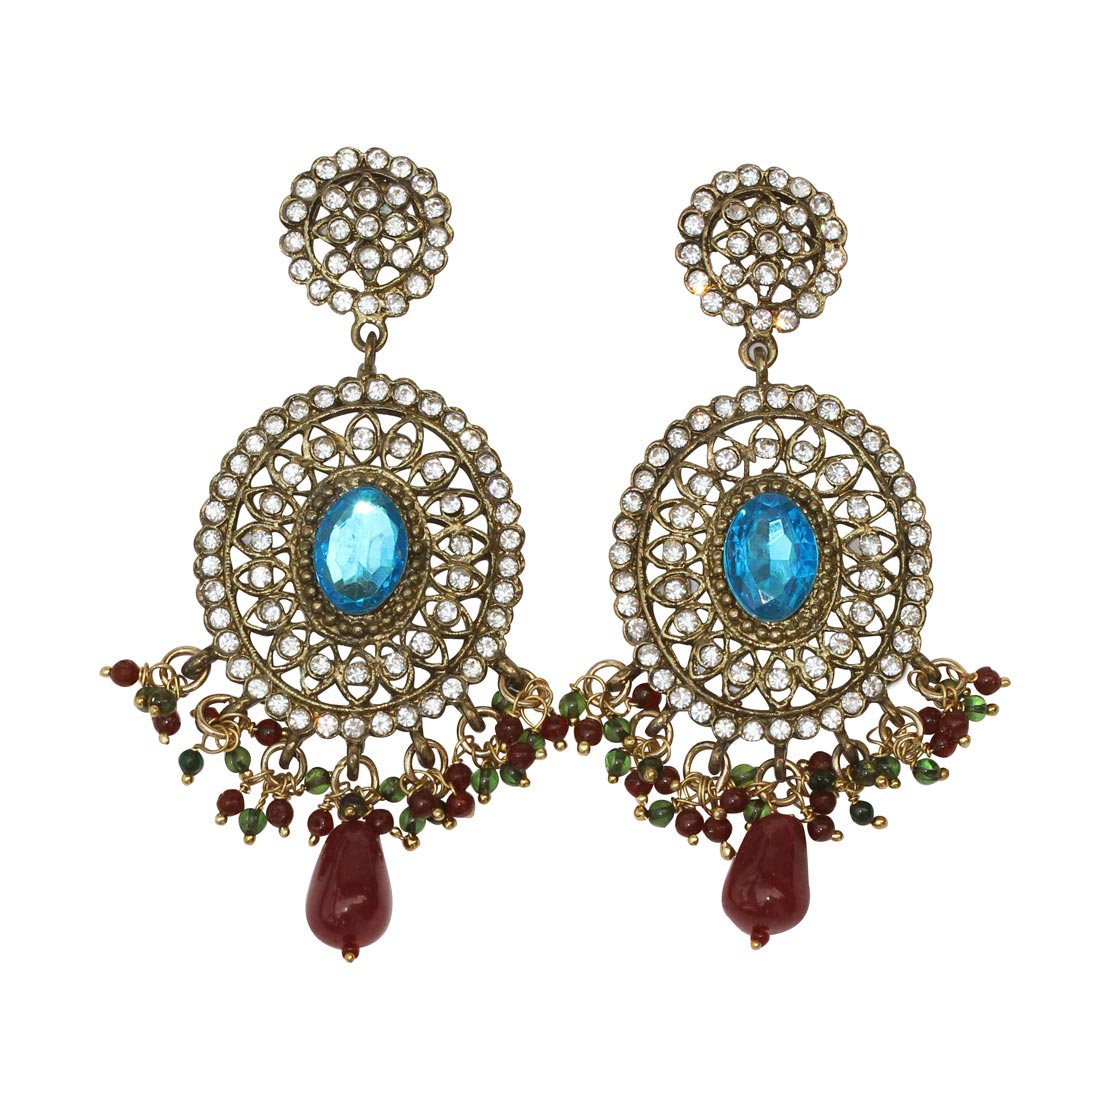 Tips to choose earrings for an outfit